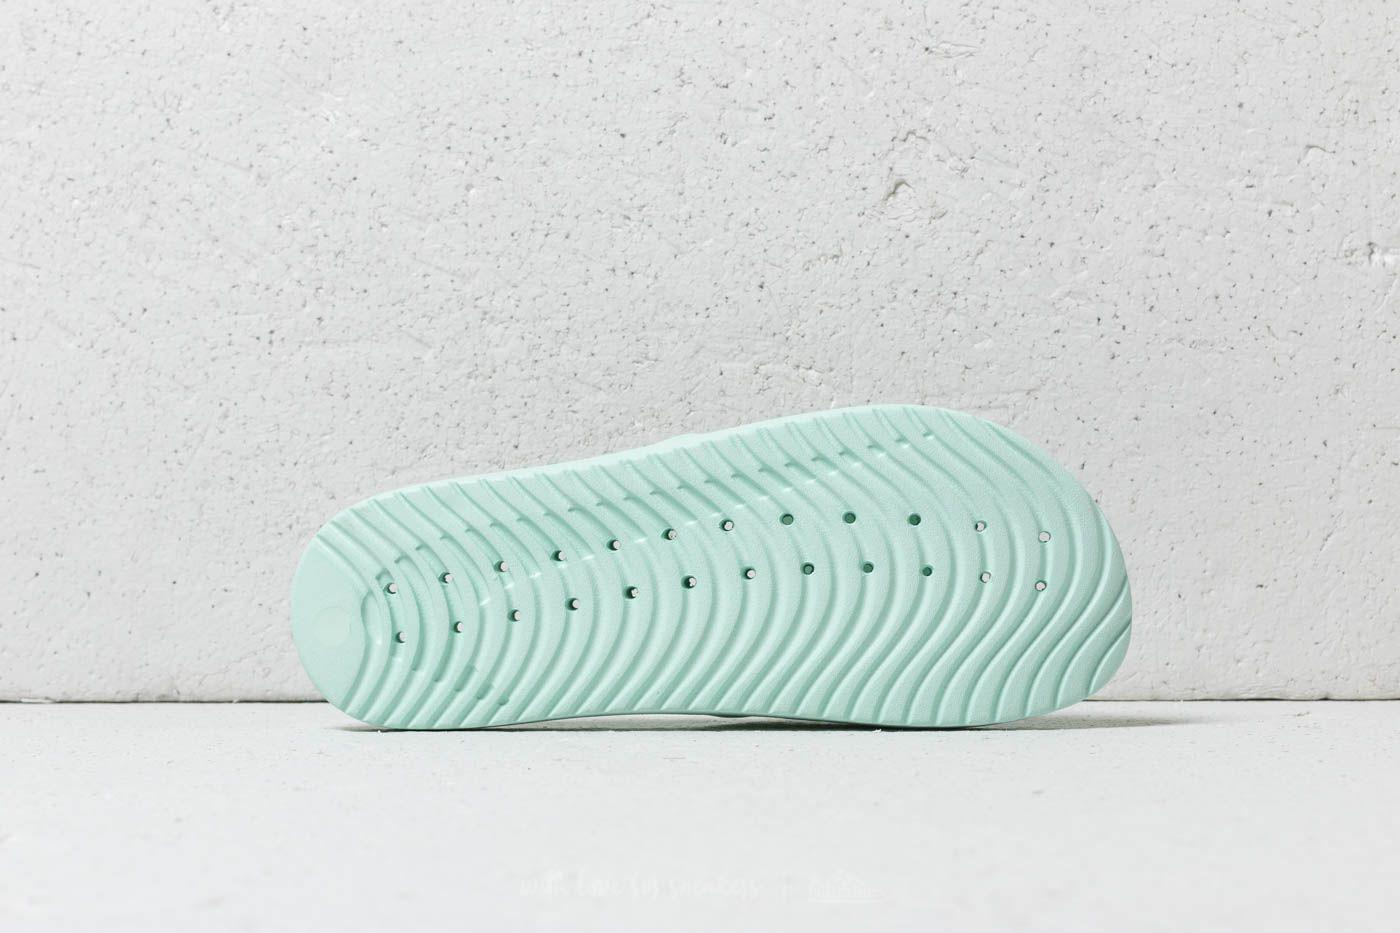 c65a9049fdc5 Lyst - Nike Wmns Kawa Shower Igloo  Light Bone in Green